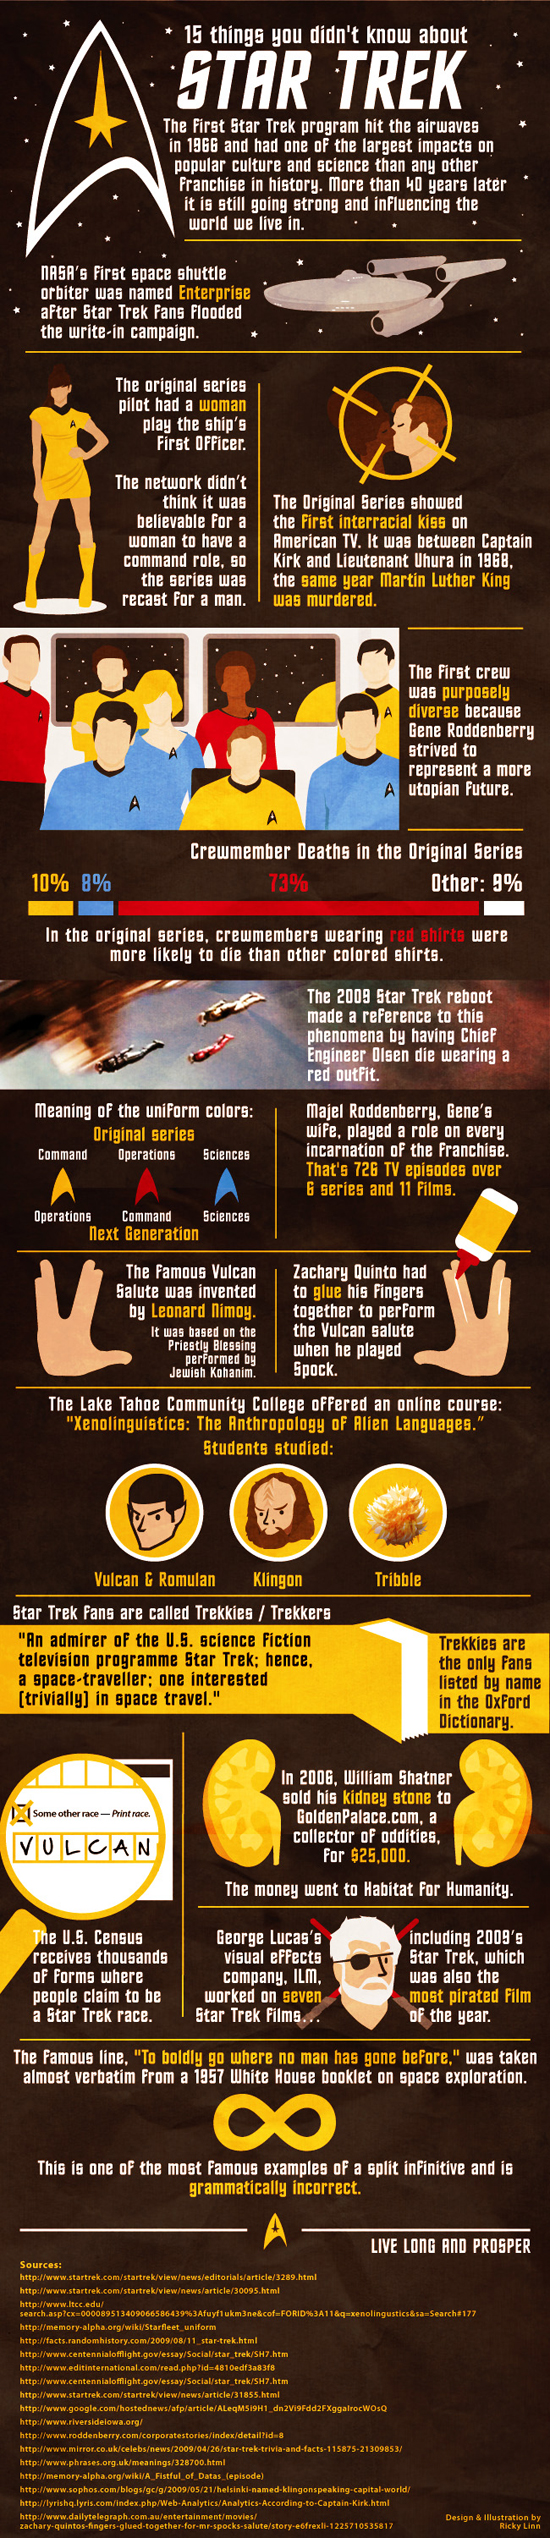 15 Facts About Star Trek Infographic